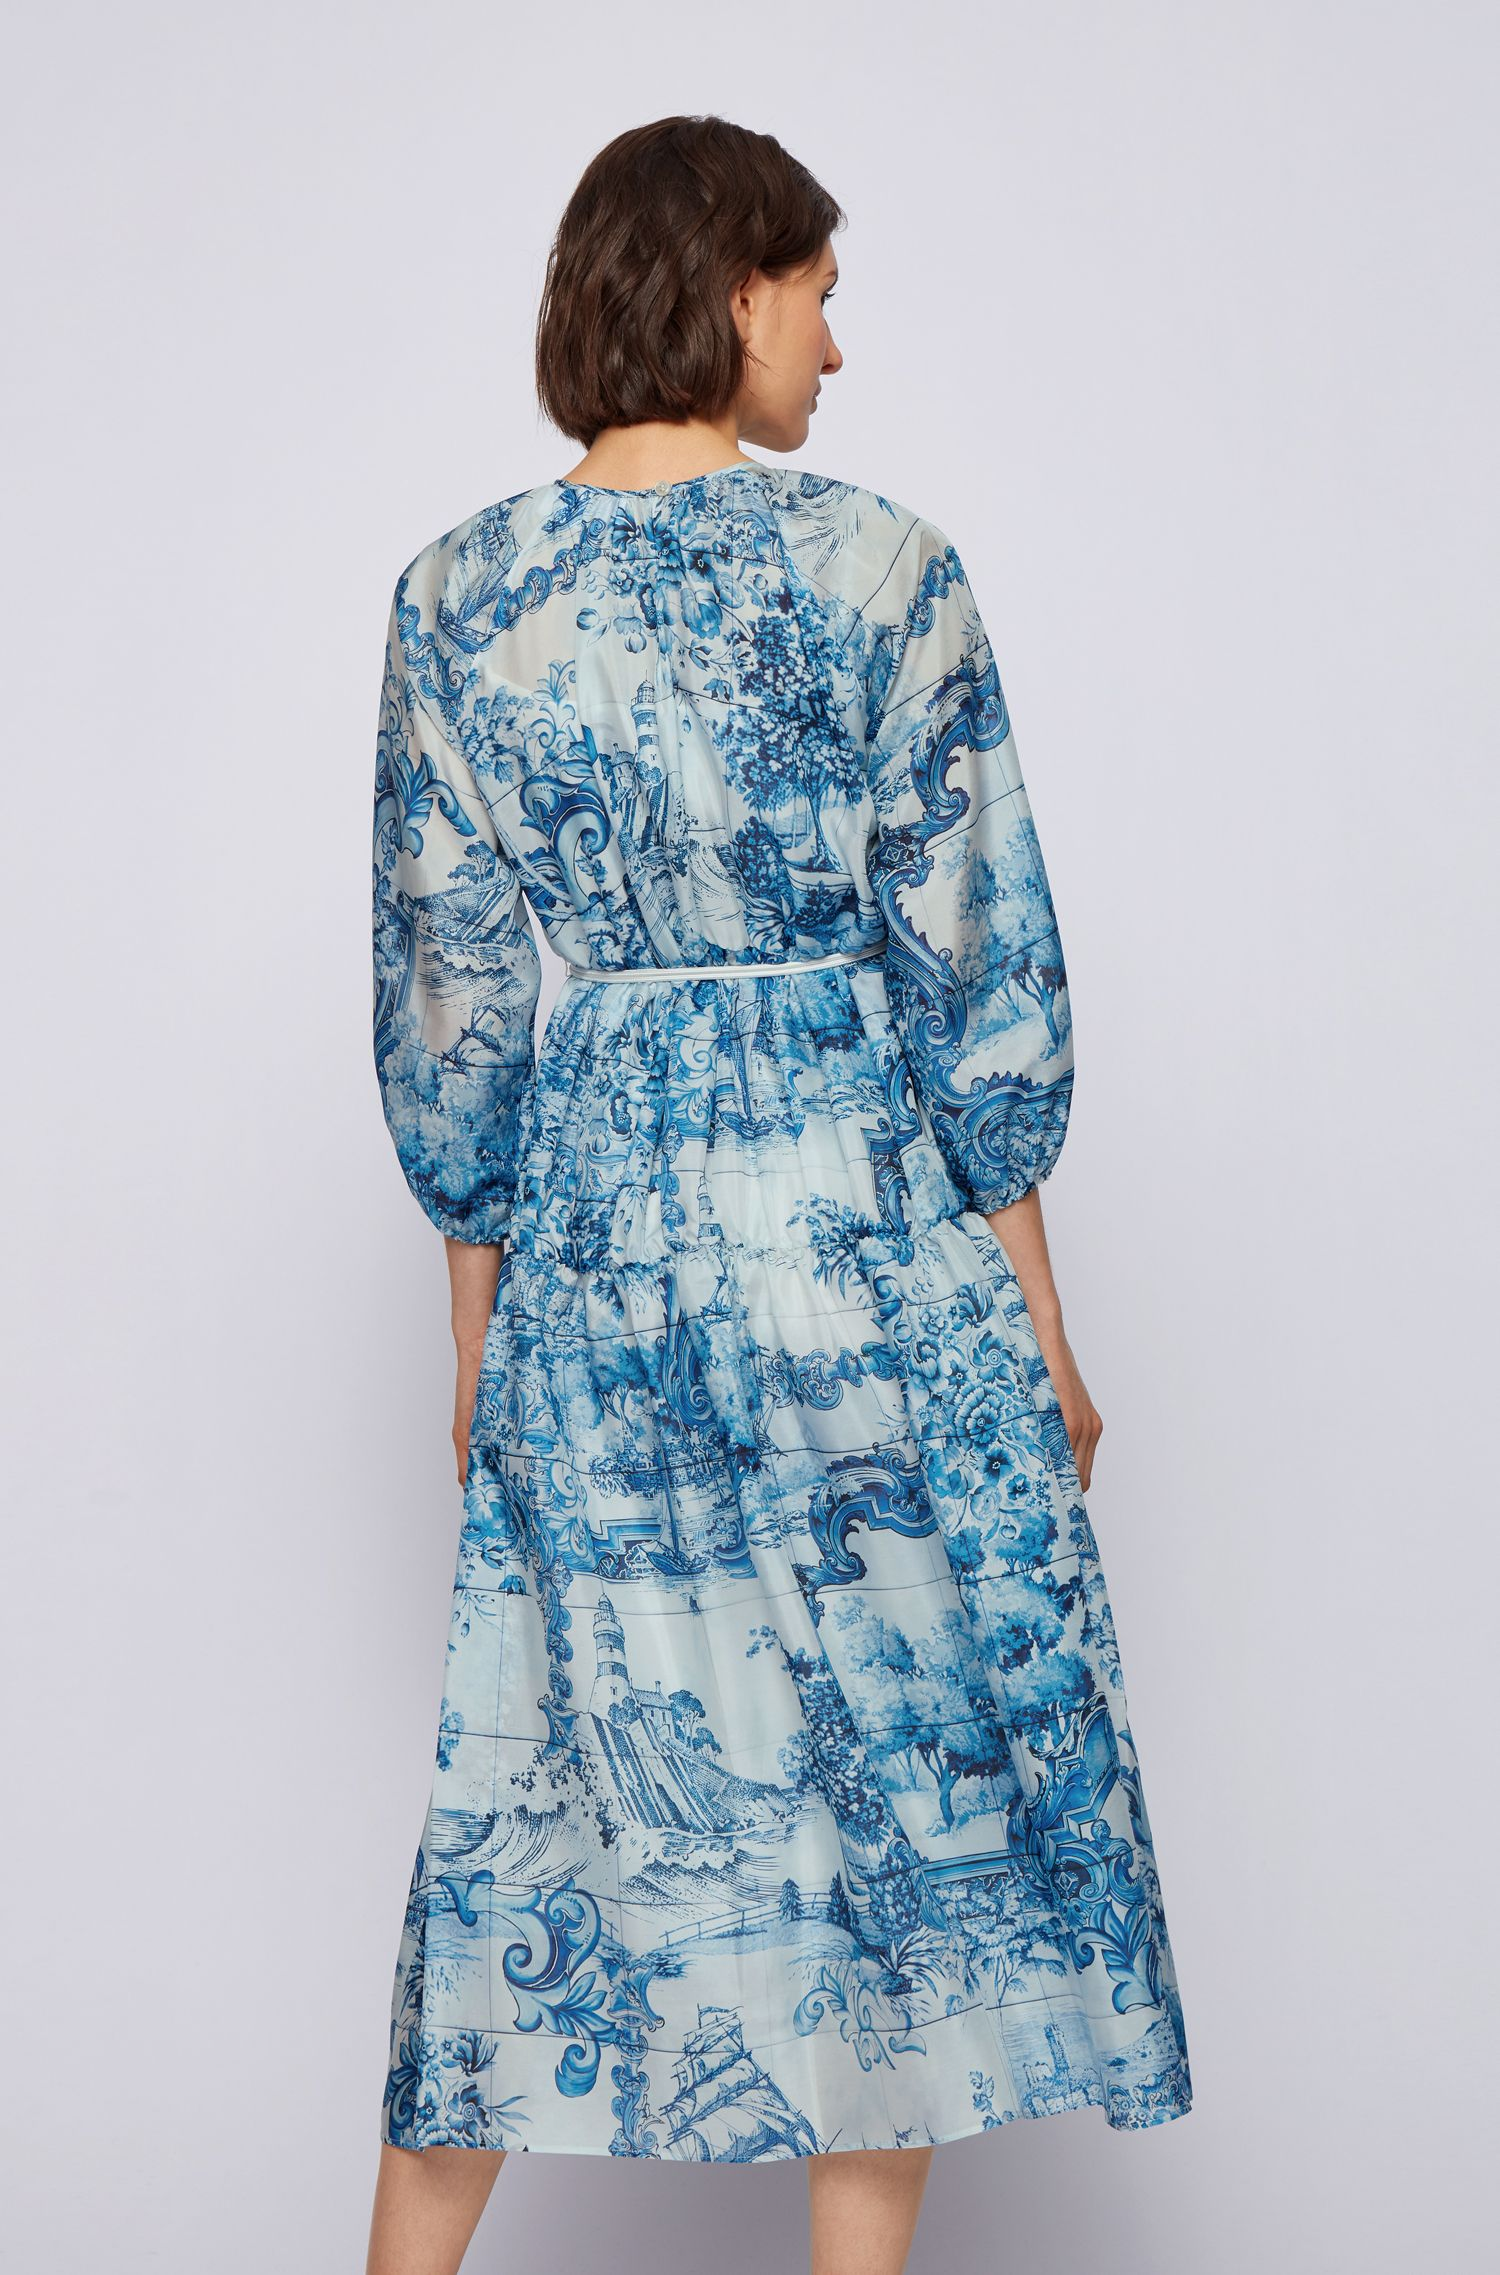 Silk dress with collection print and cord belt BOSS |  | 50447623976